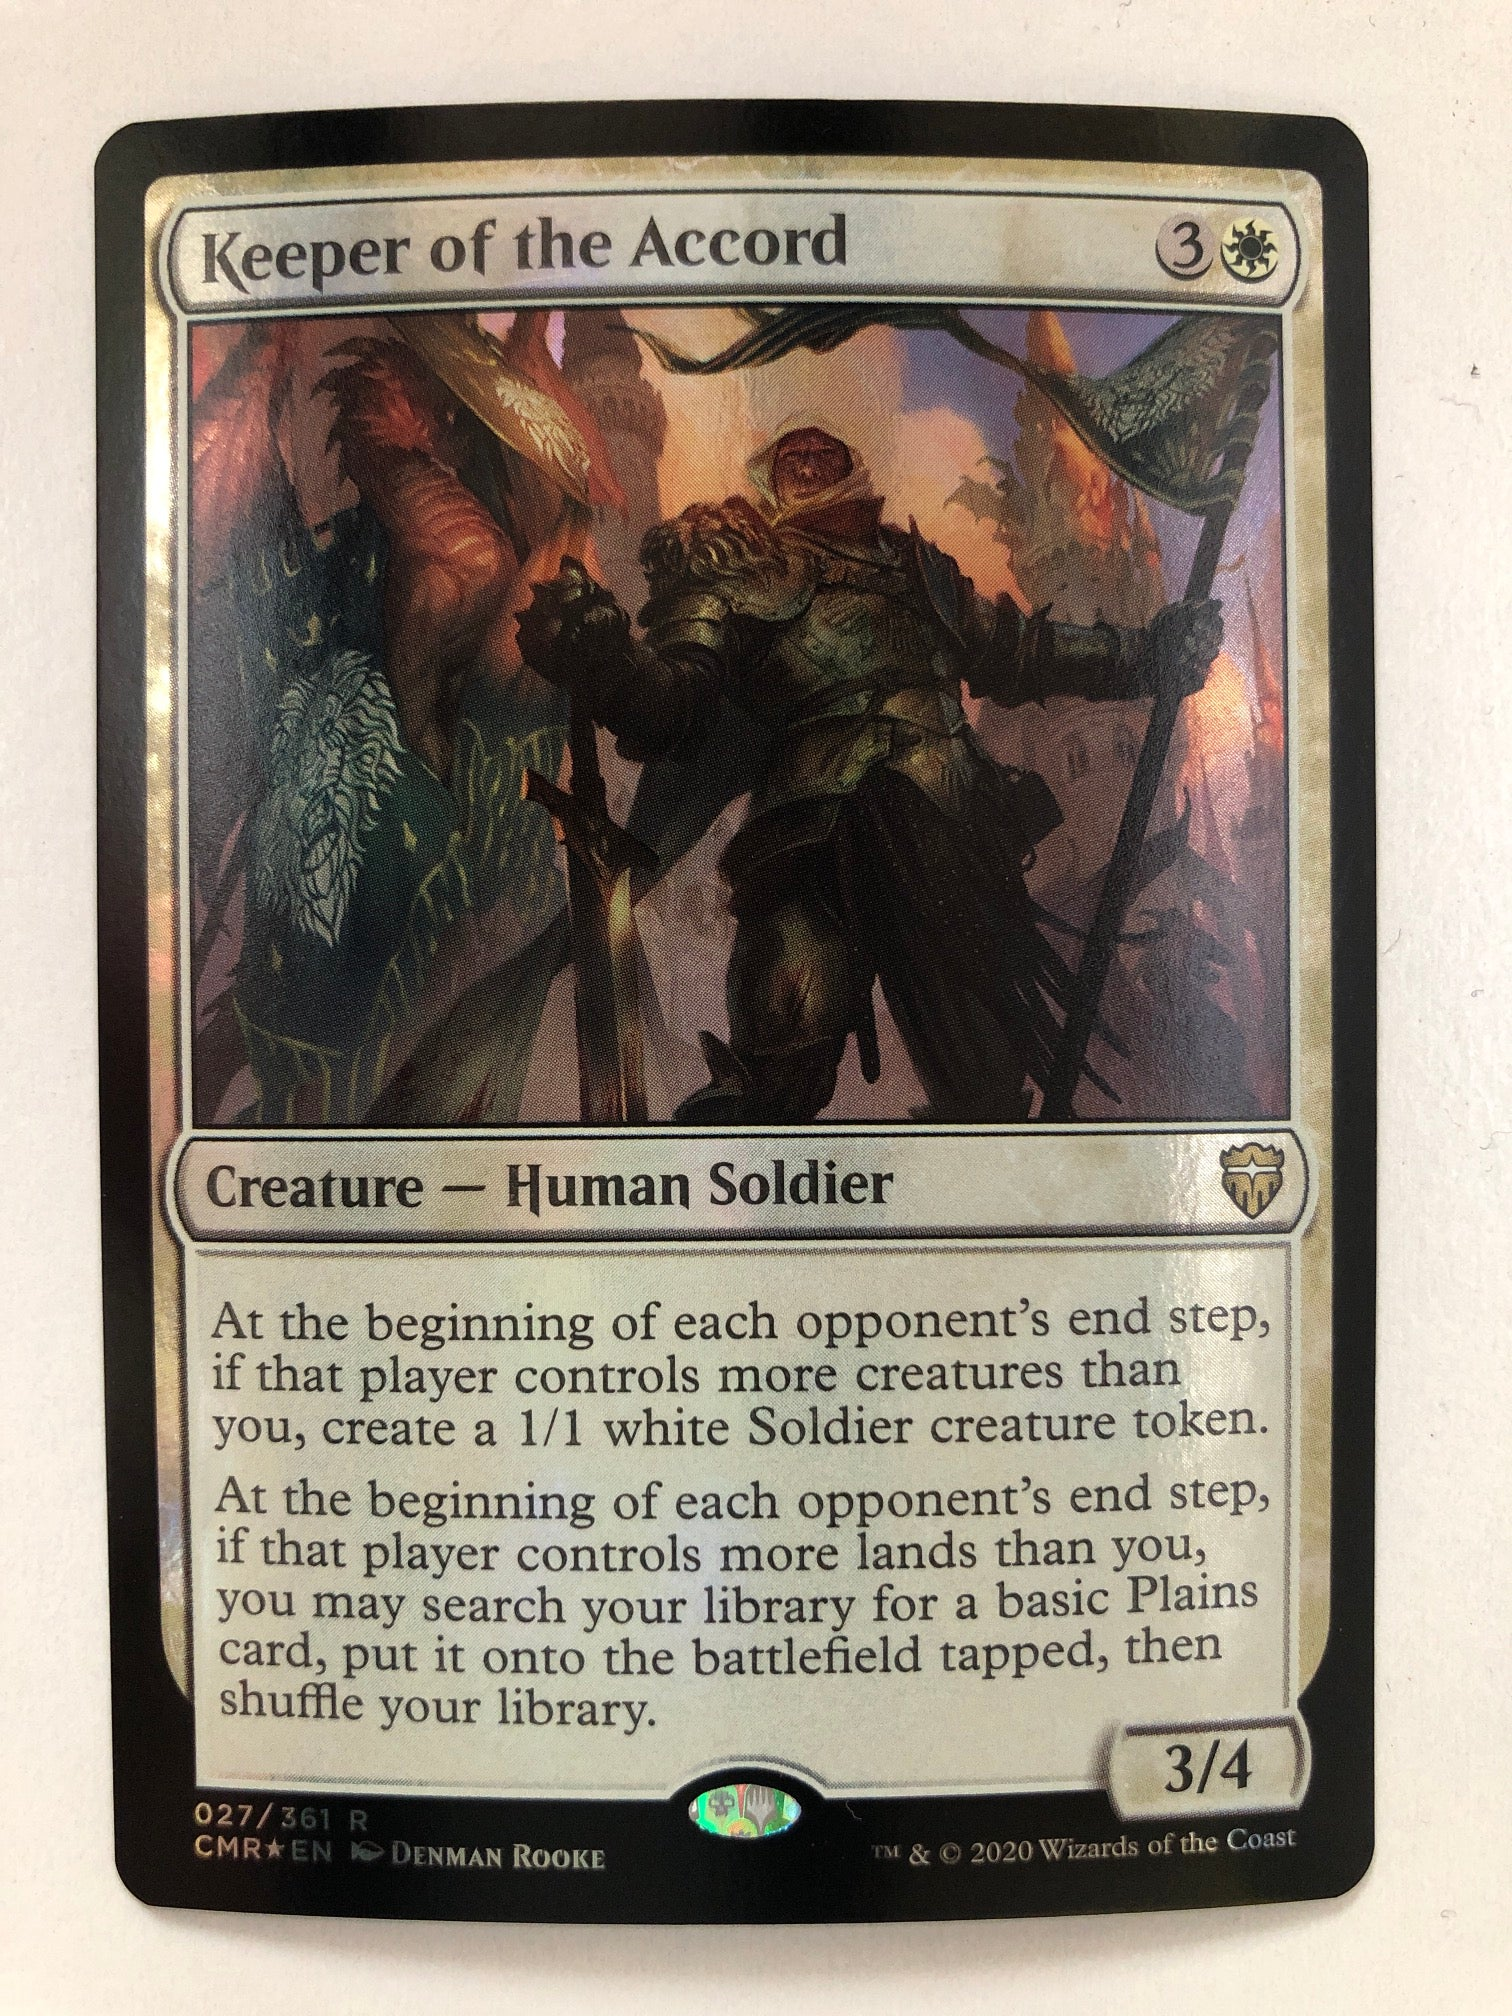 Keeper of the Accord - CMR 027/361 R (Foil) (M/NM)